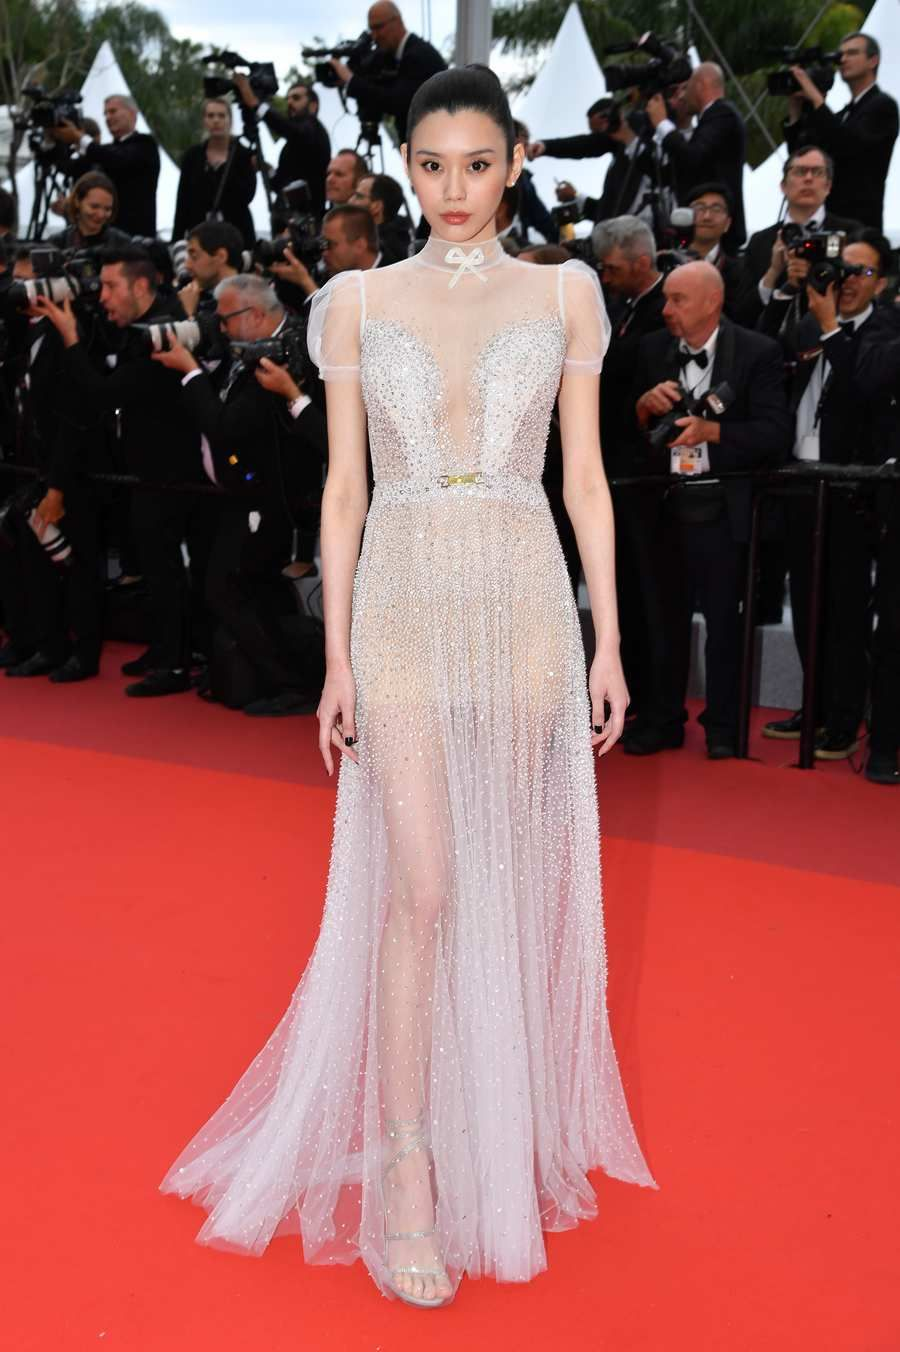 The Cannes Red Carpet Is Having A Very Good Year With Images Nice Dresses